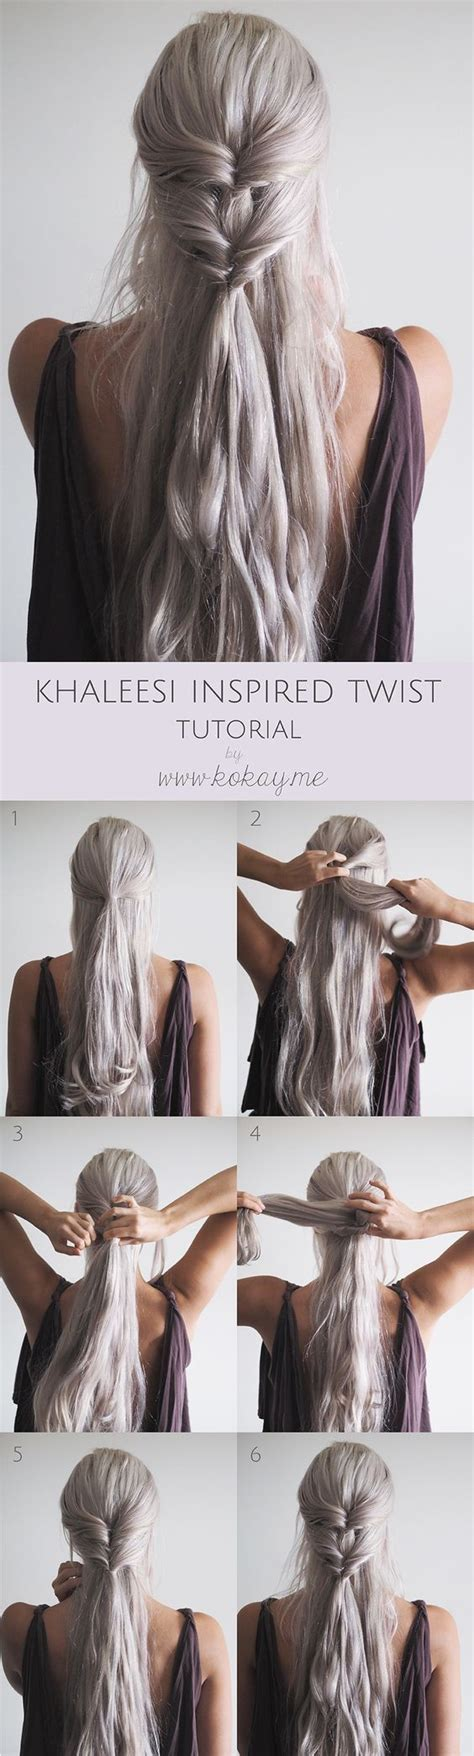 traditional hairstyles games popular on pinterest game of thrones khaleesi inspired